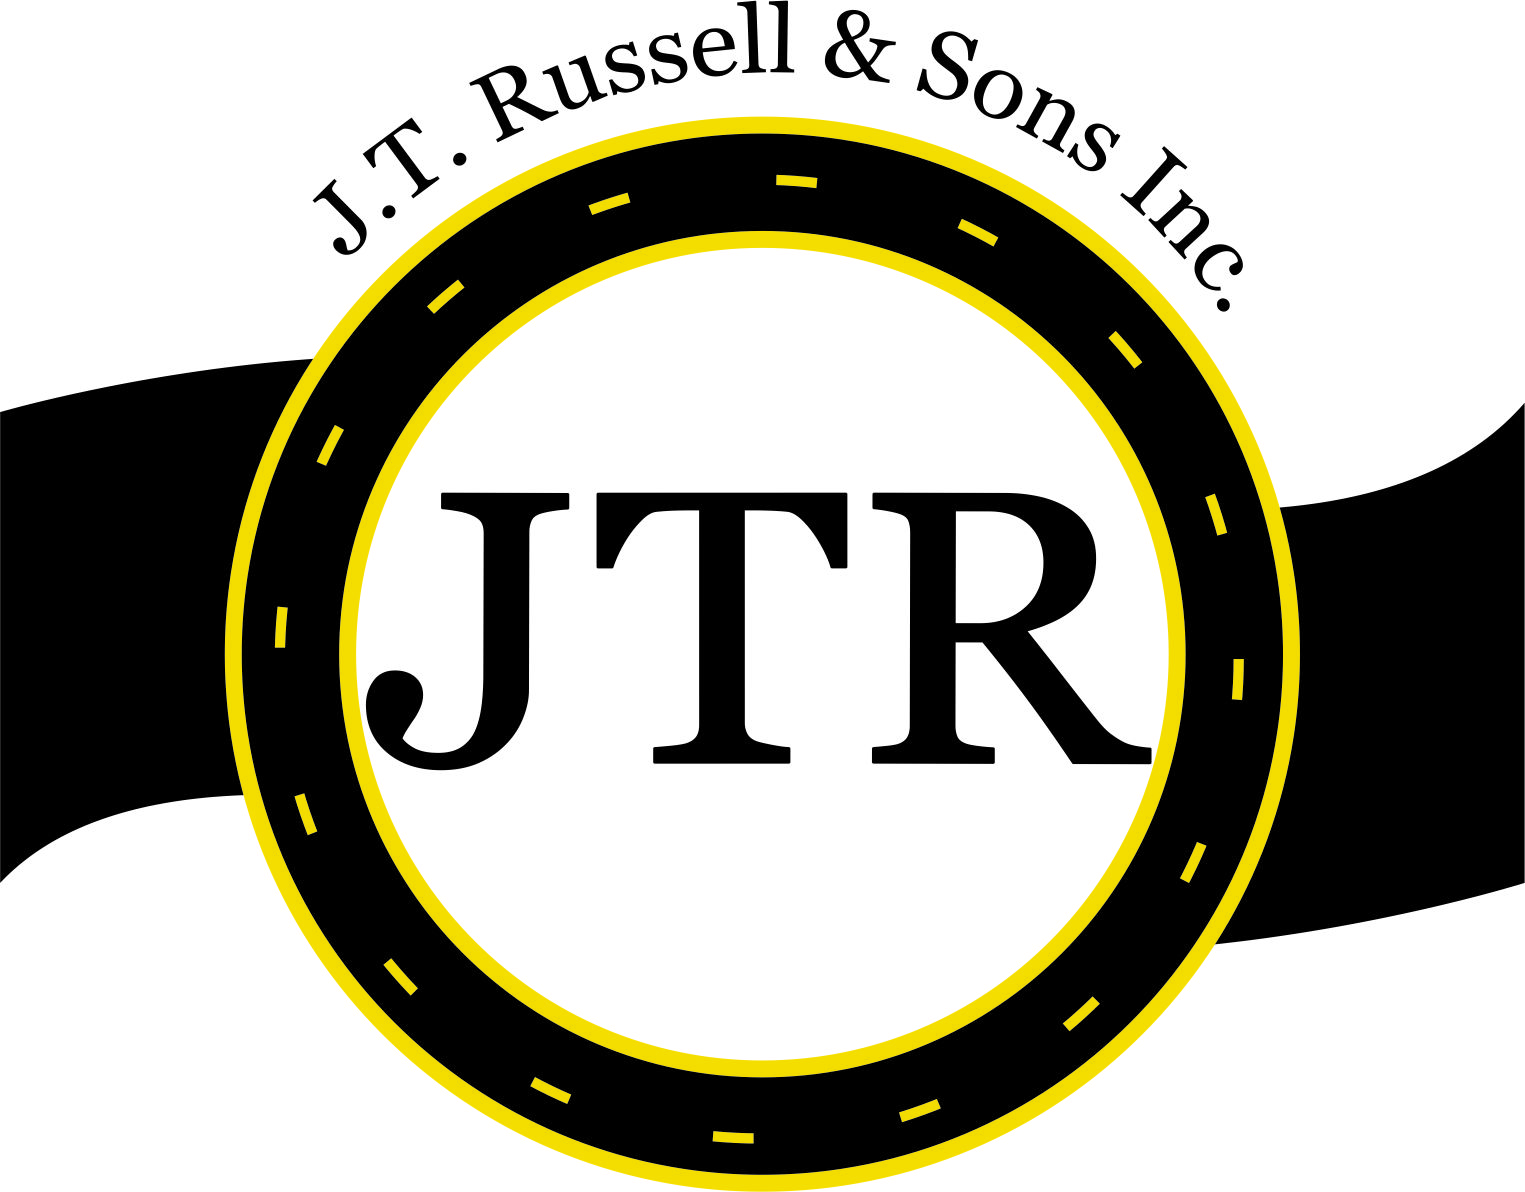 J.T. Russell & Sons Inc.